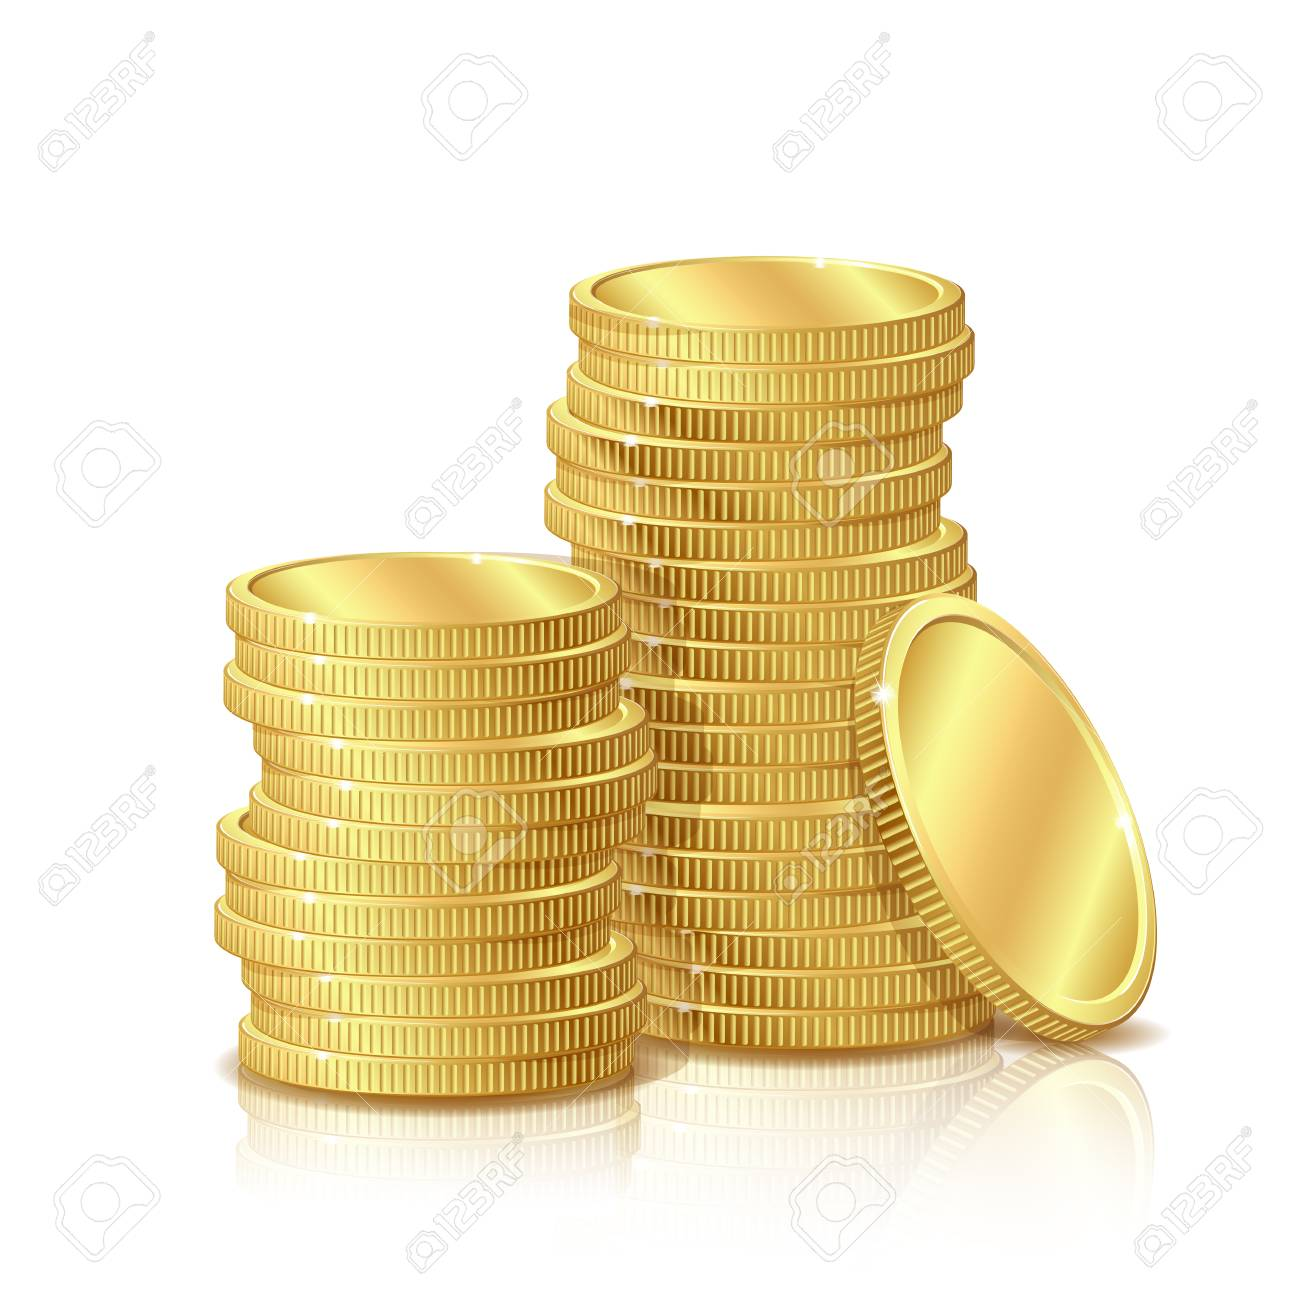 Stack of Gold Coins, isolated on white background - 30486539